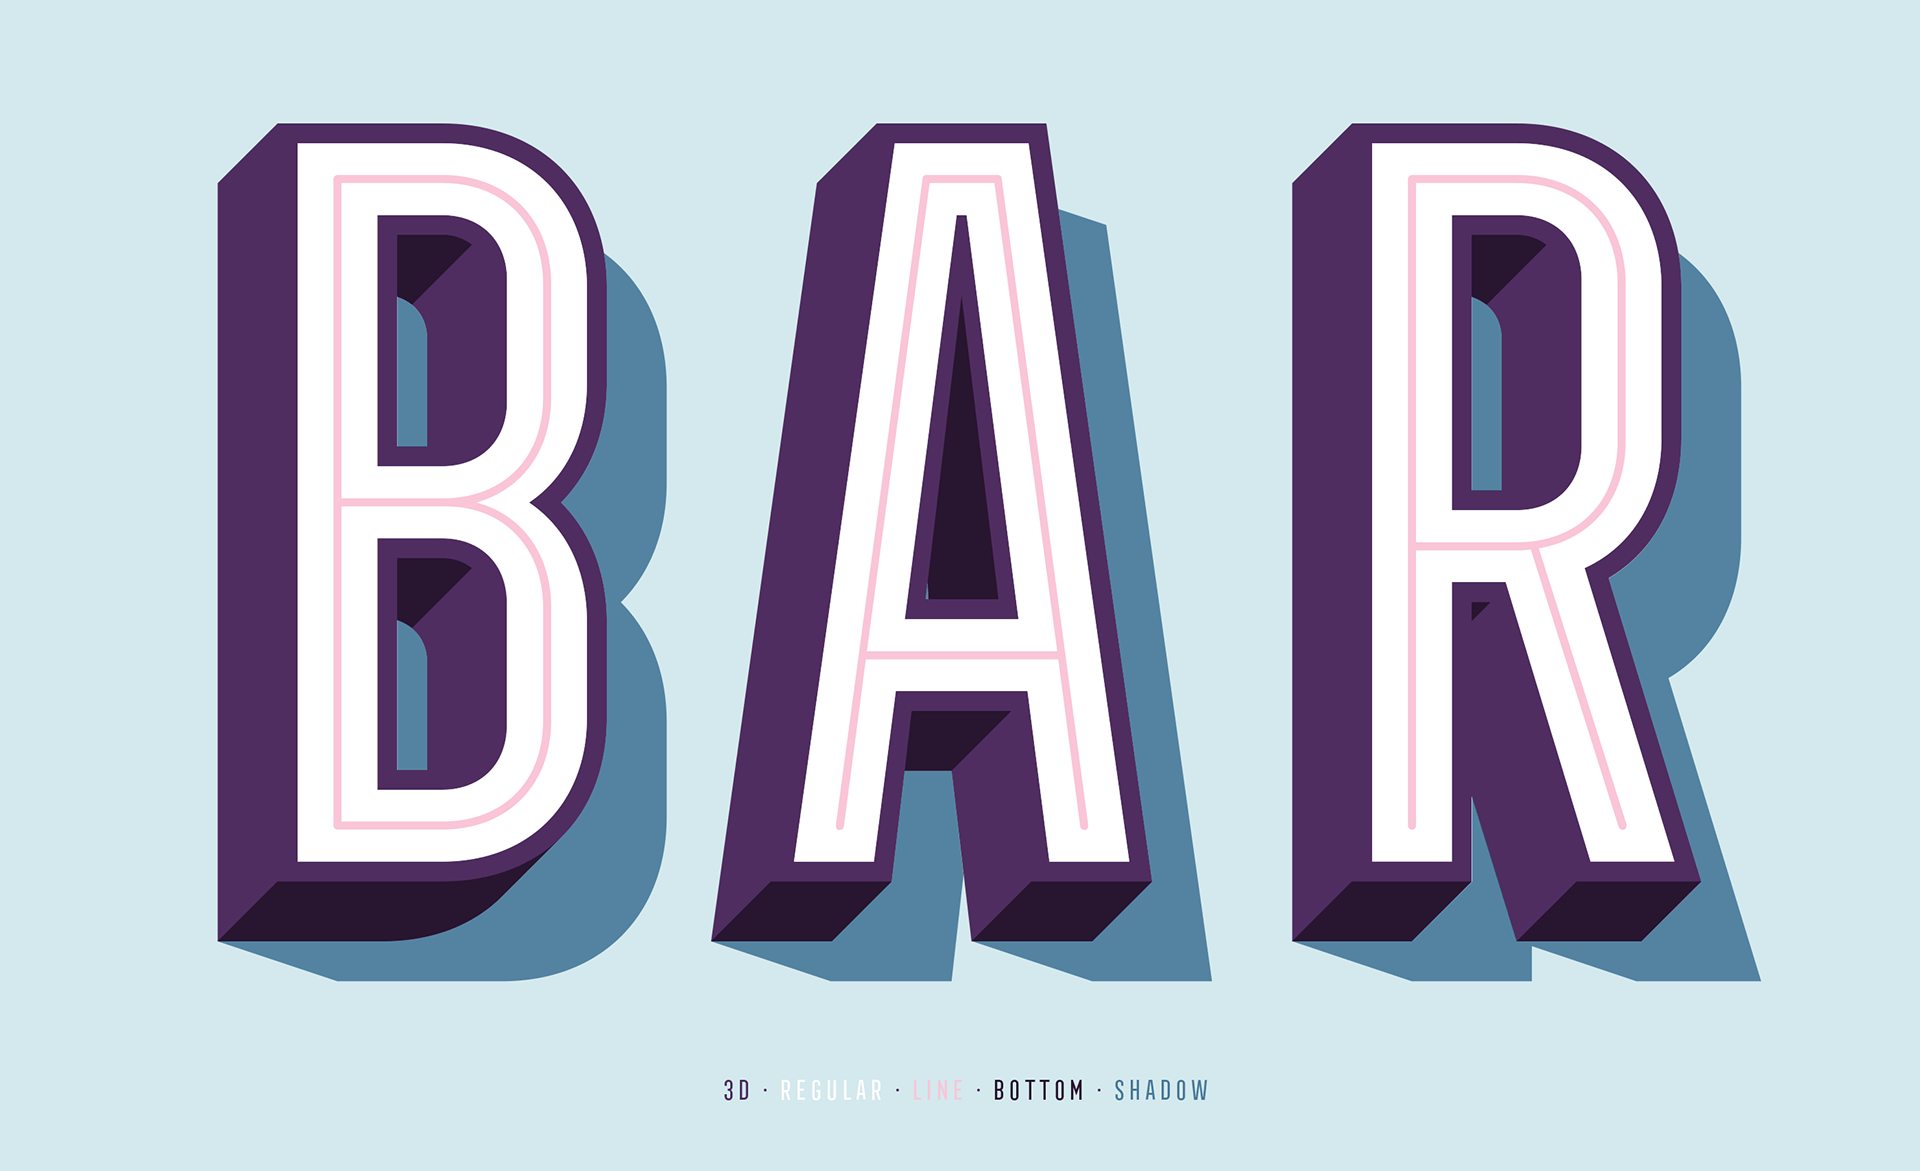 frontage condensed5